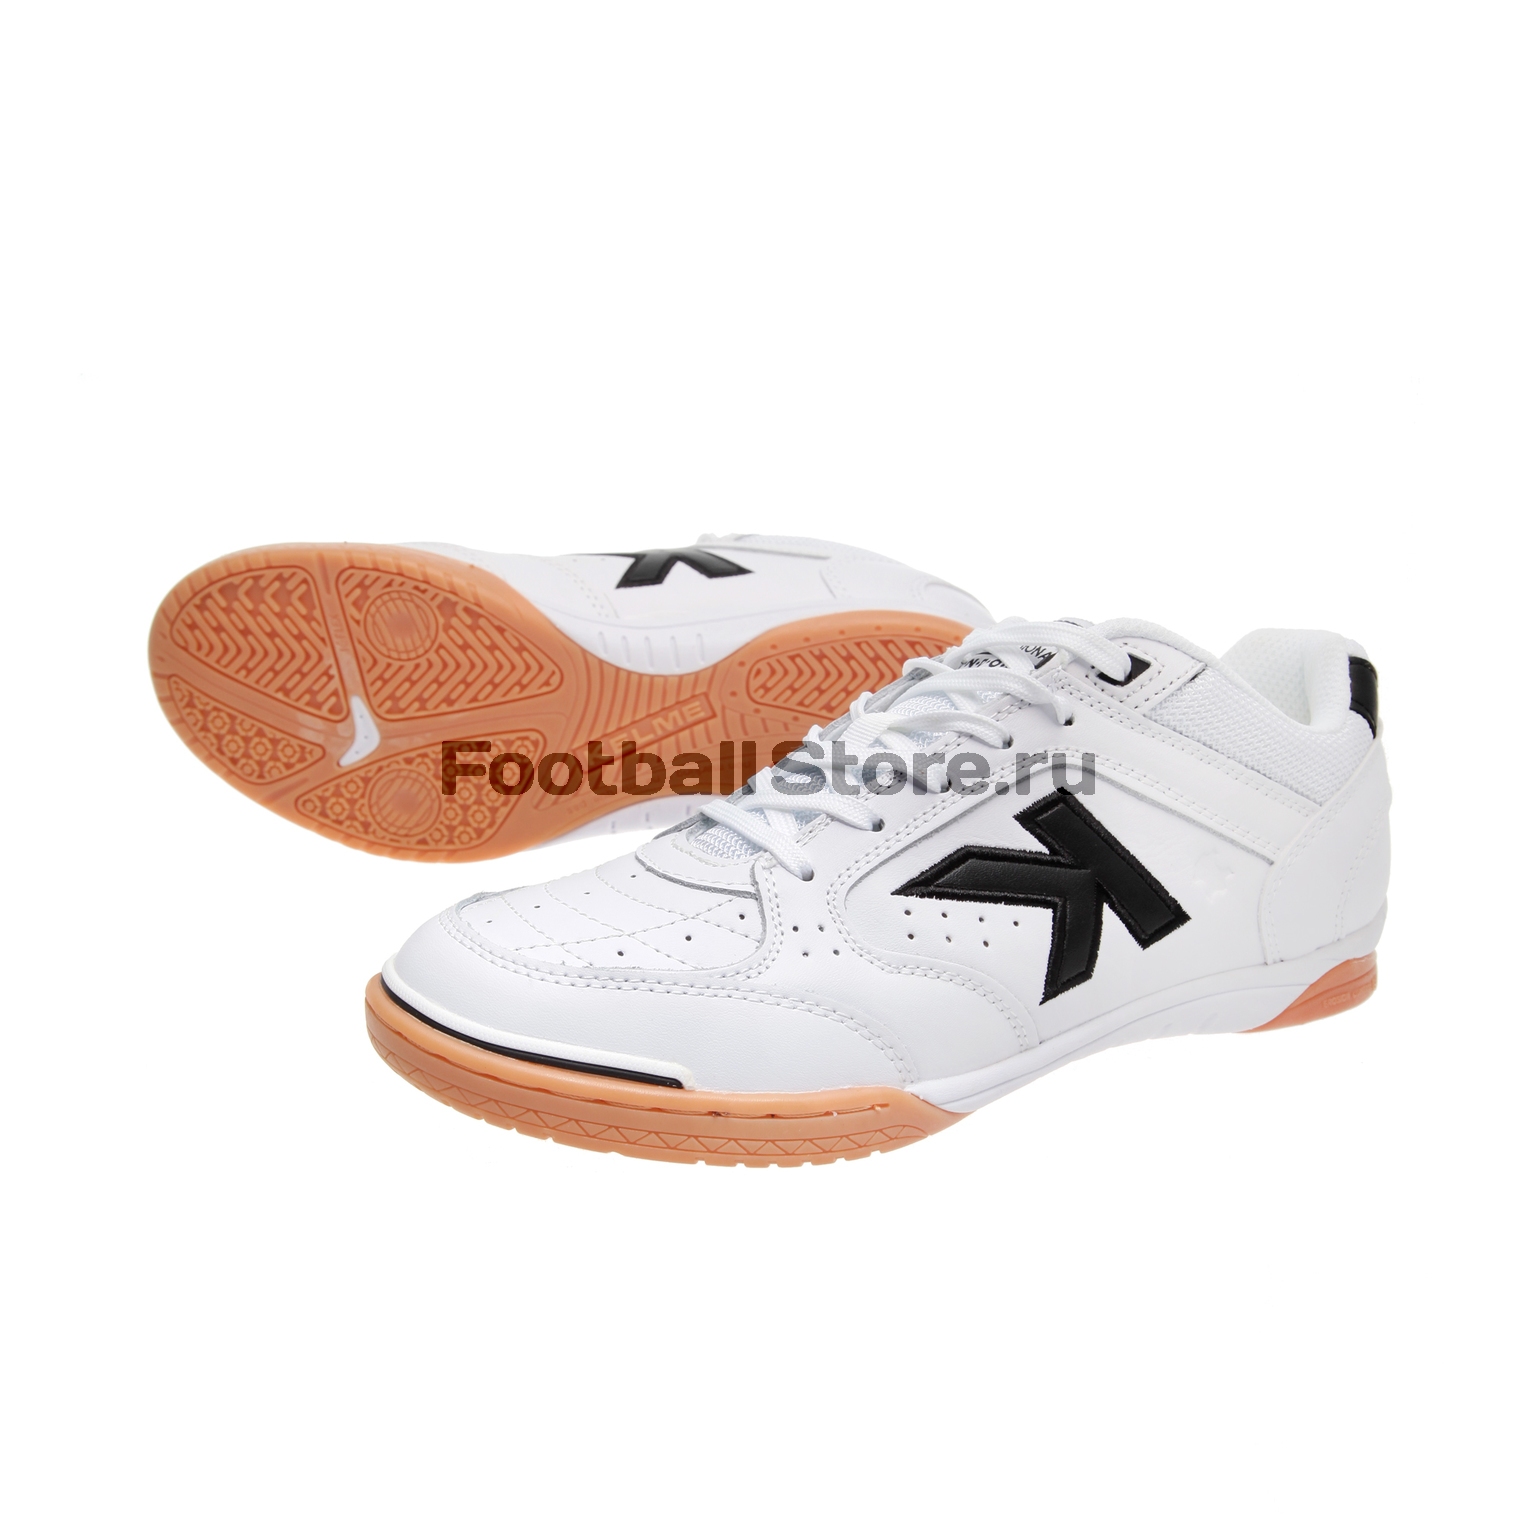 Футзалки Kelme Precision One 55813-061